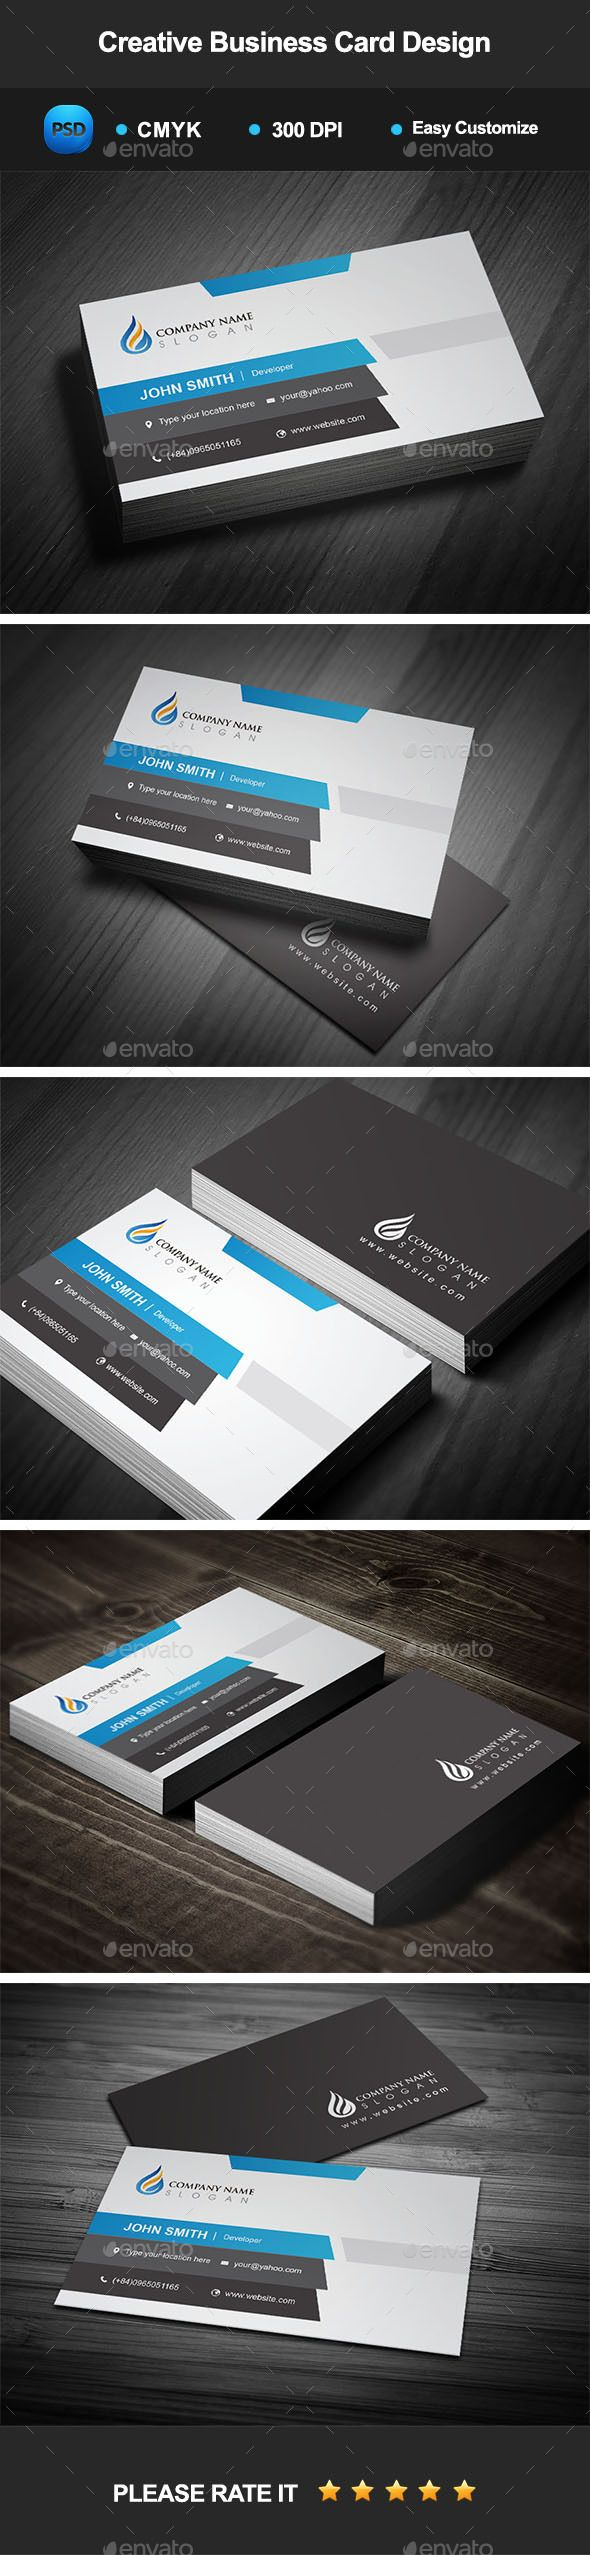 Creative business card design creative business card designs latest creative business card design reheart Gallery